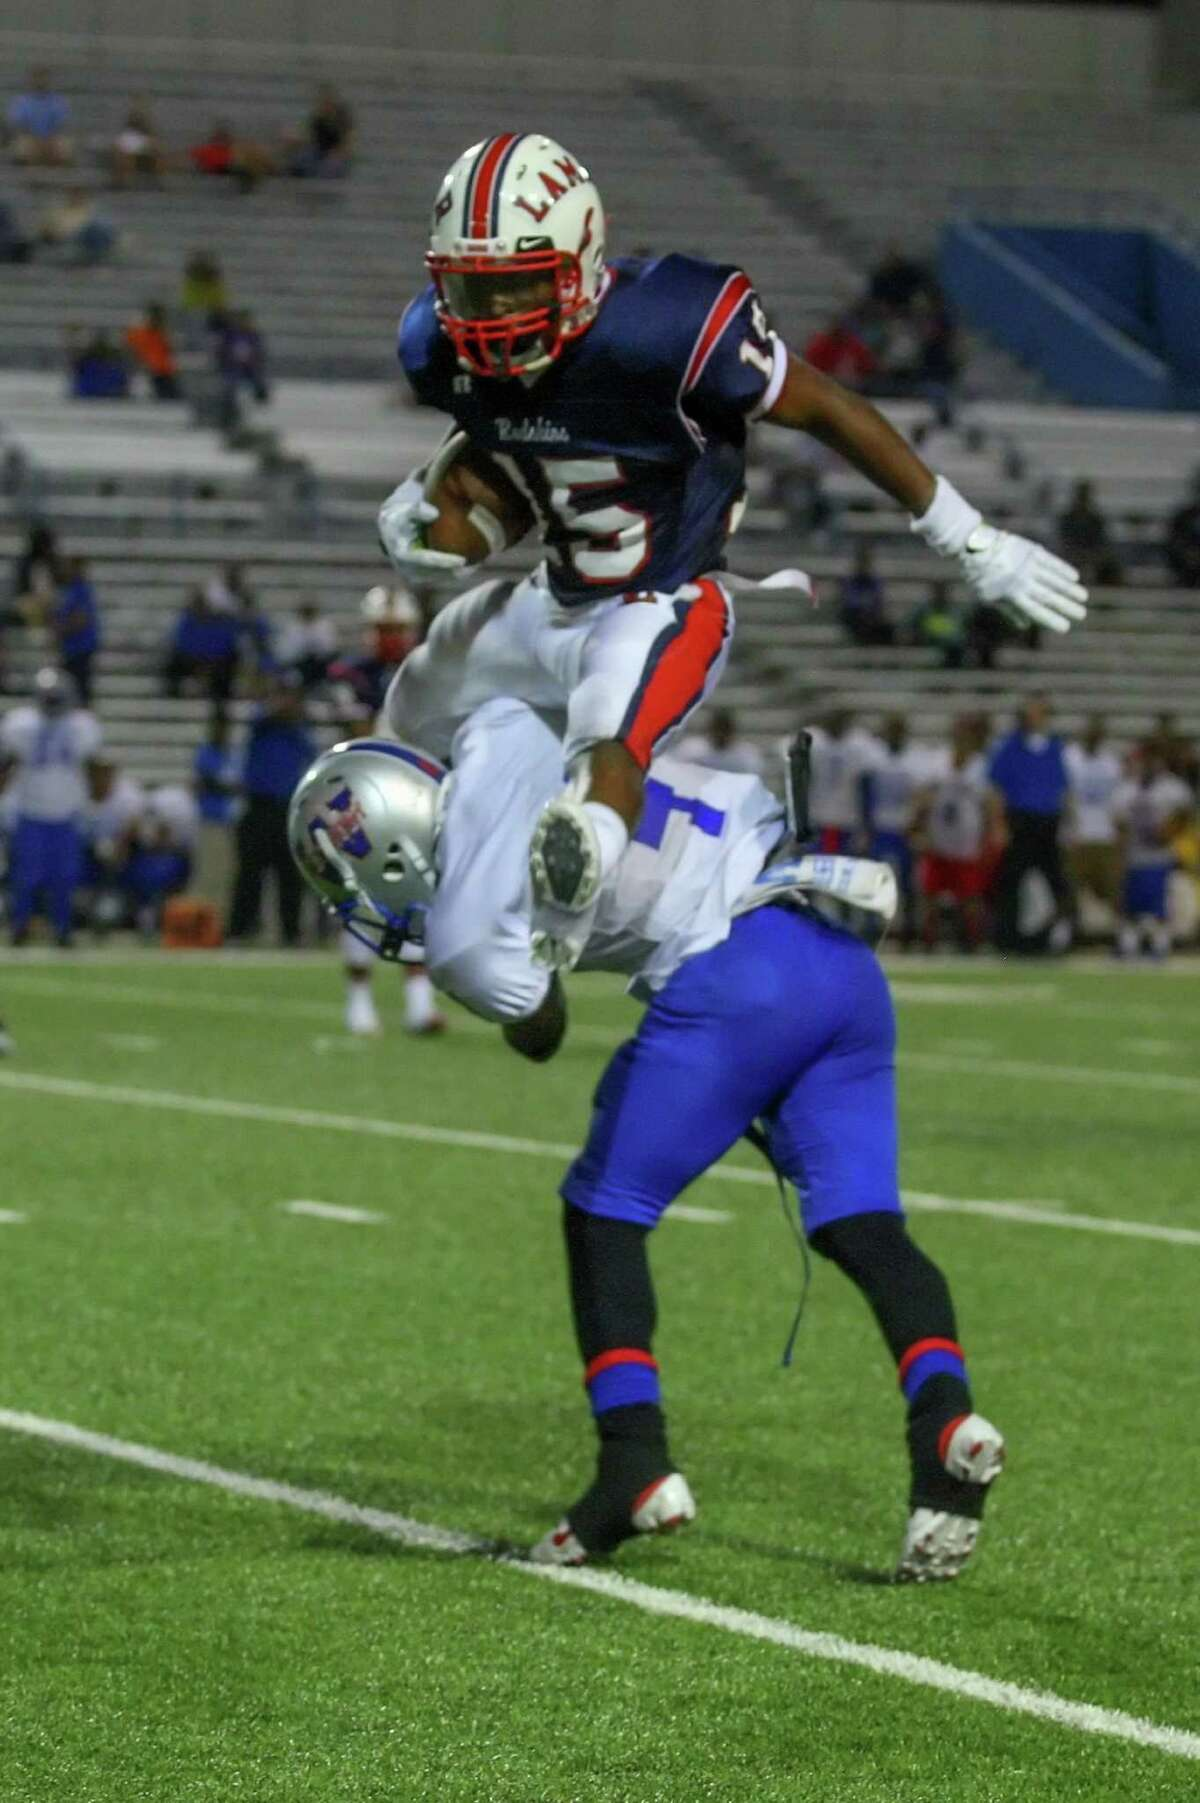 Lamar running back Ivy Smith leaps over Westbury defensive back Tydarian Jones to avoid a tackle attempt.